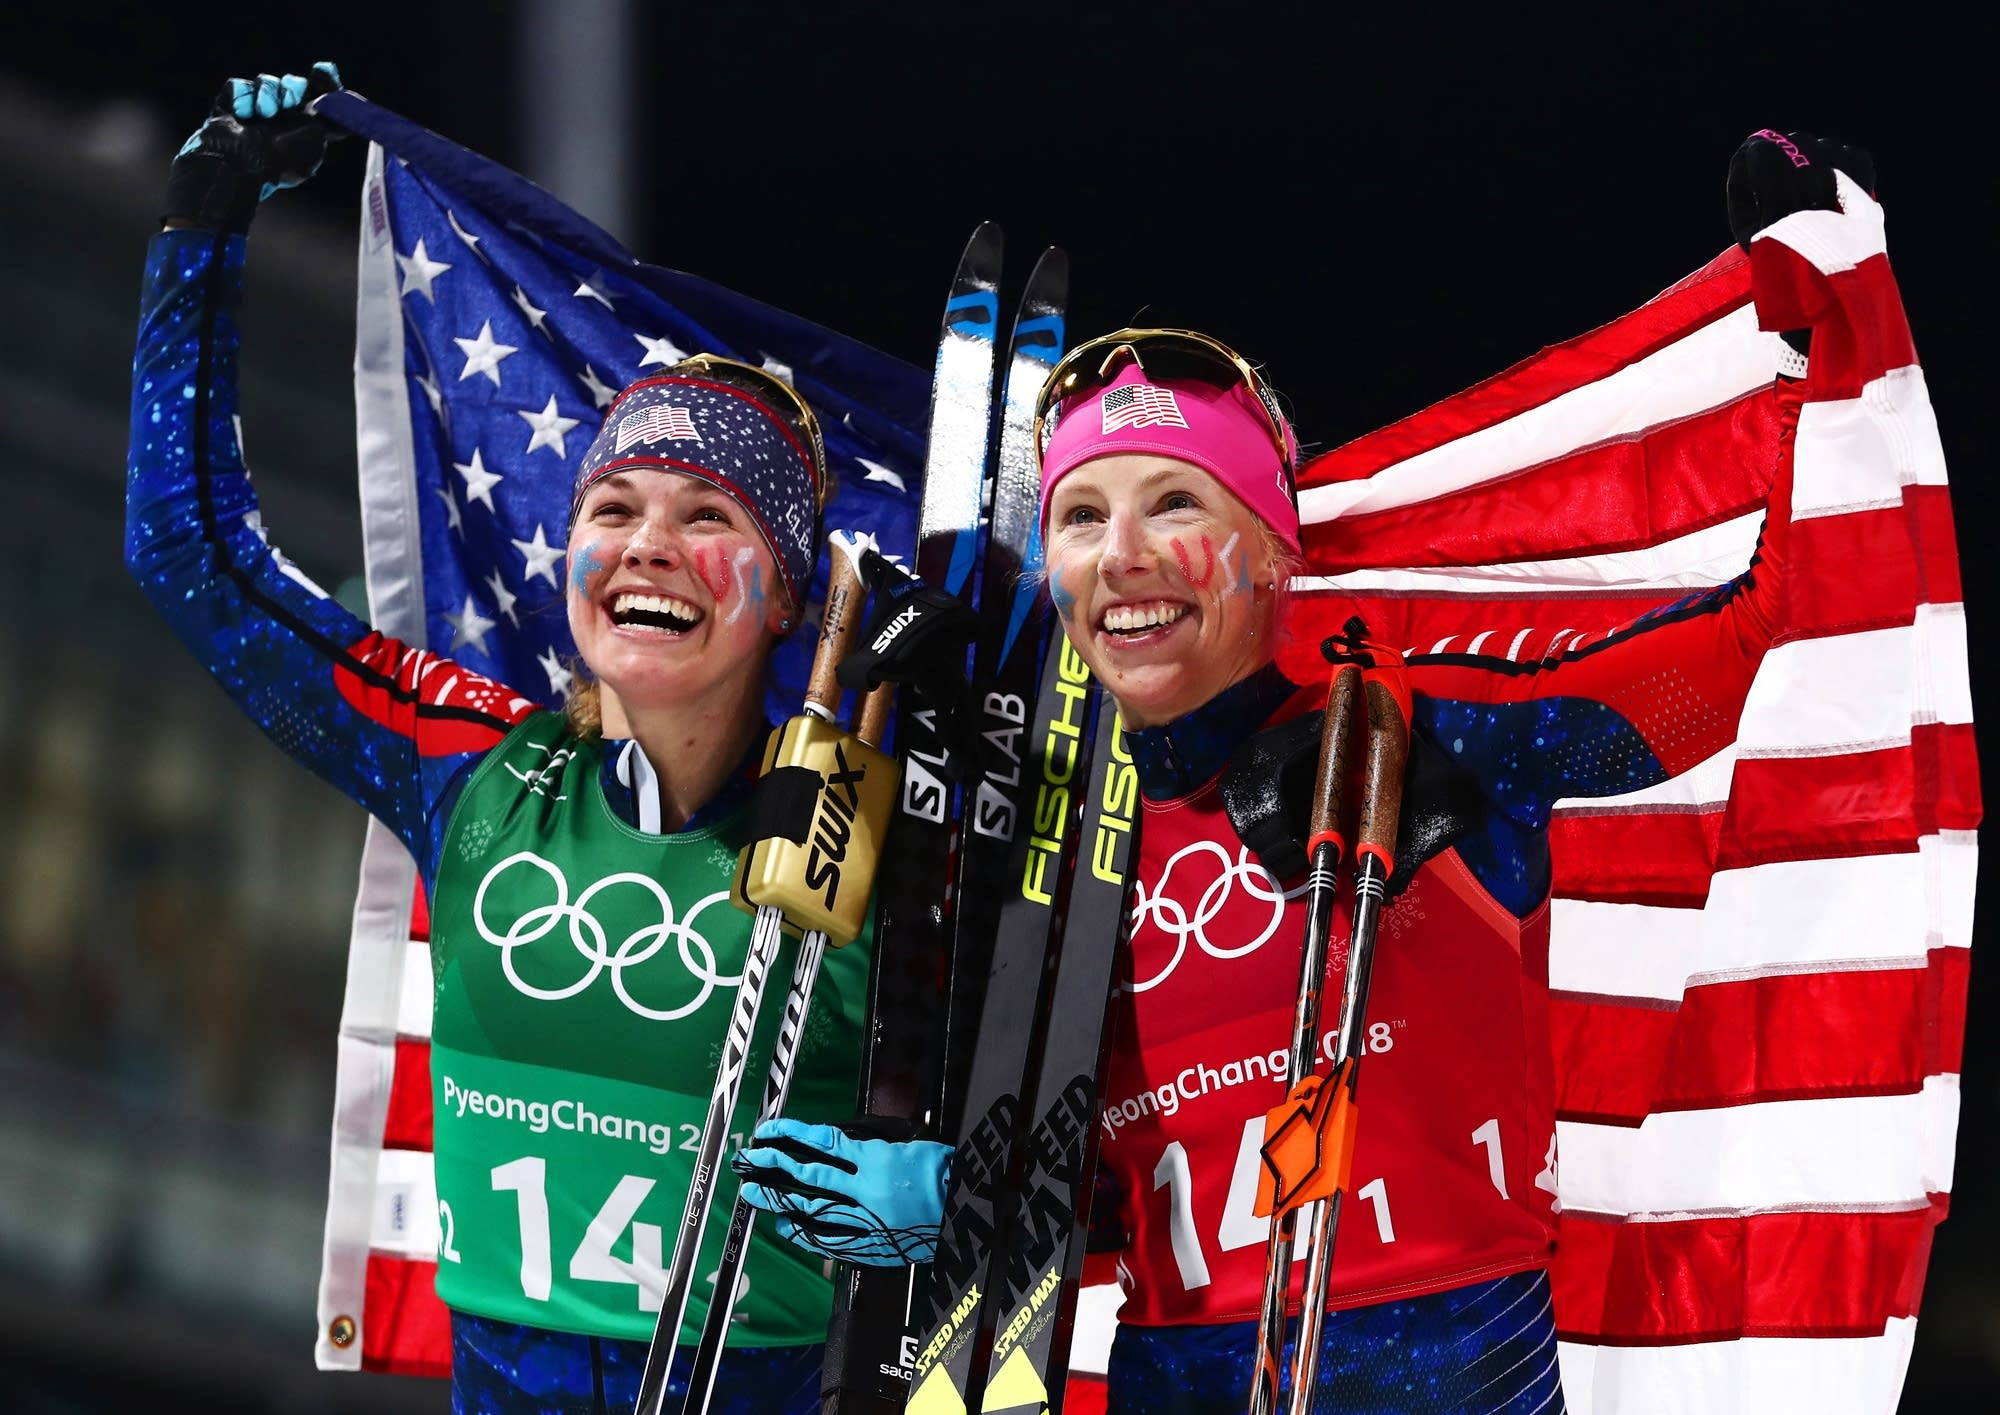 Americans Jessie Diggins, left, and Kikkan Randall win cross-country gold.